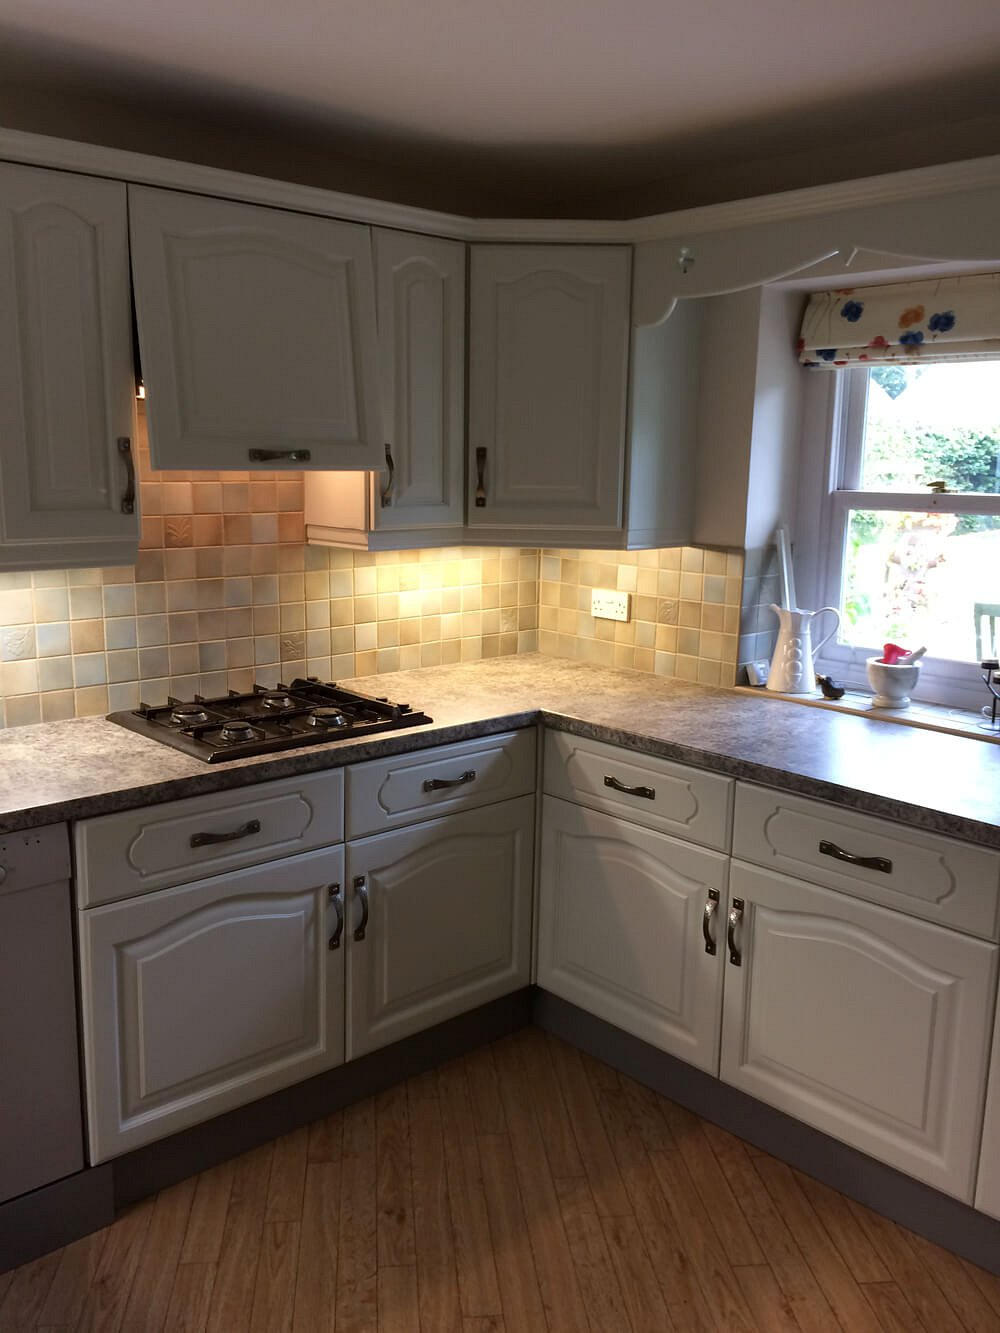 Refinishing an oak kitchen in Scarborough - After